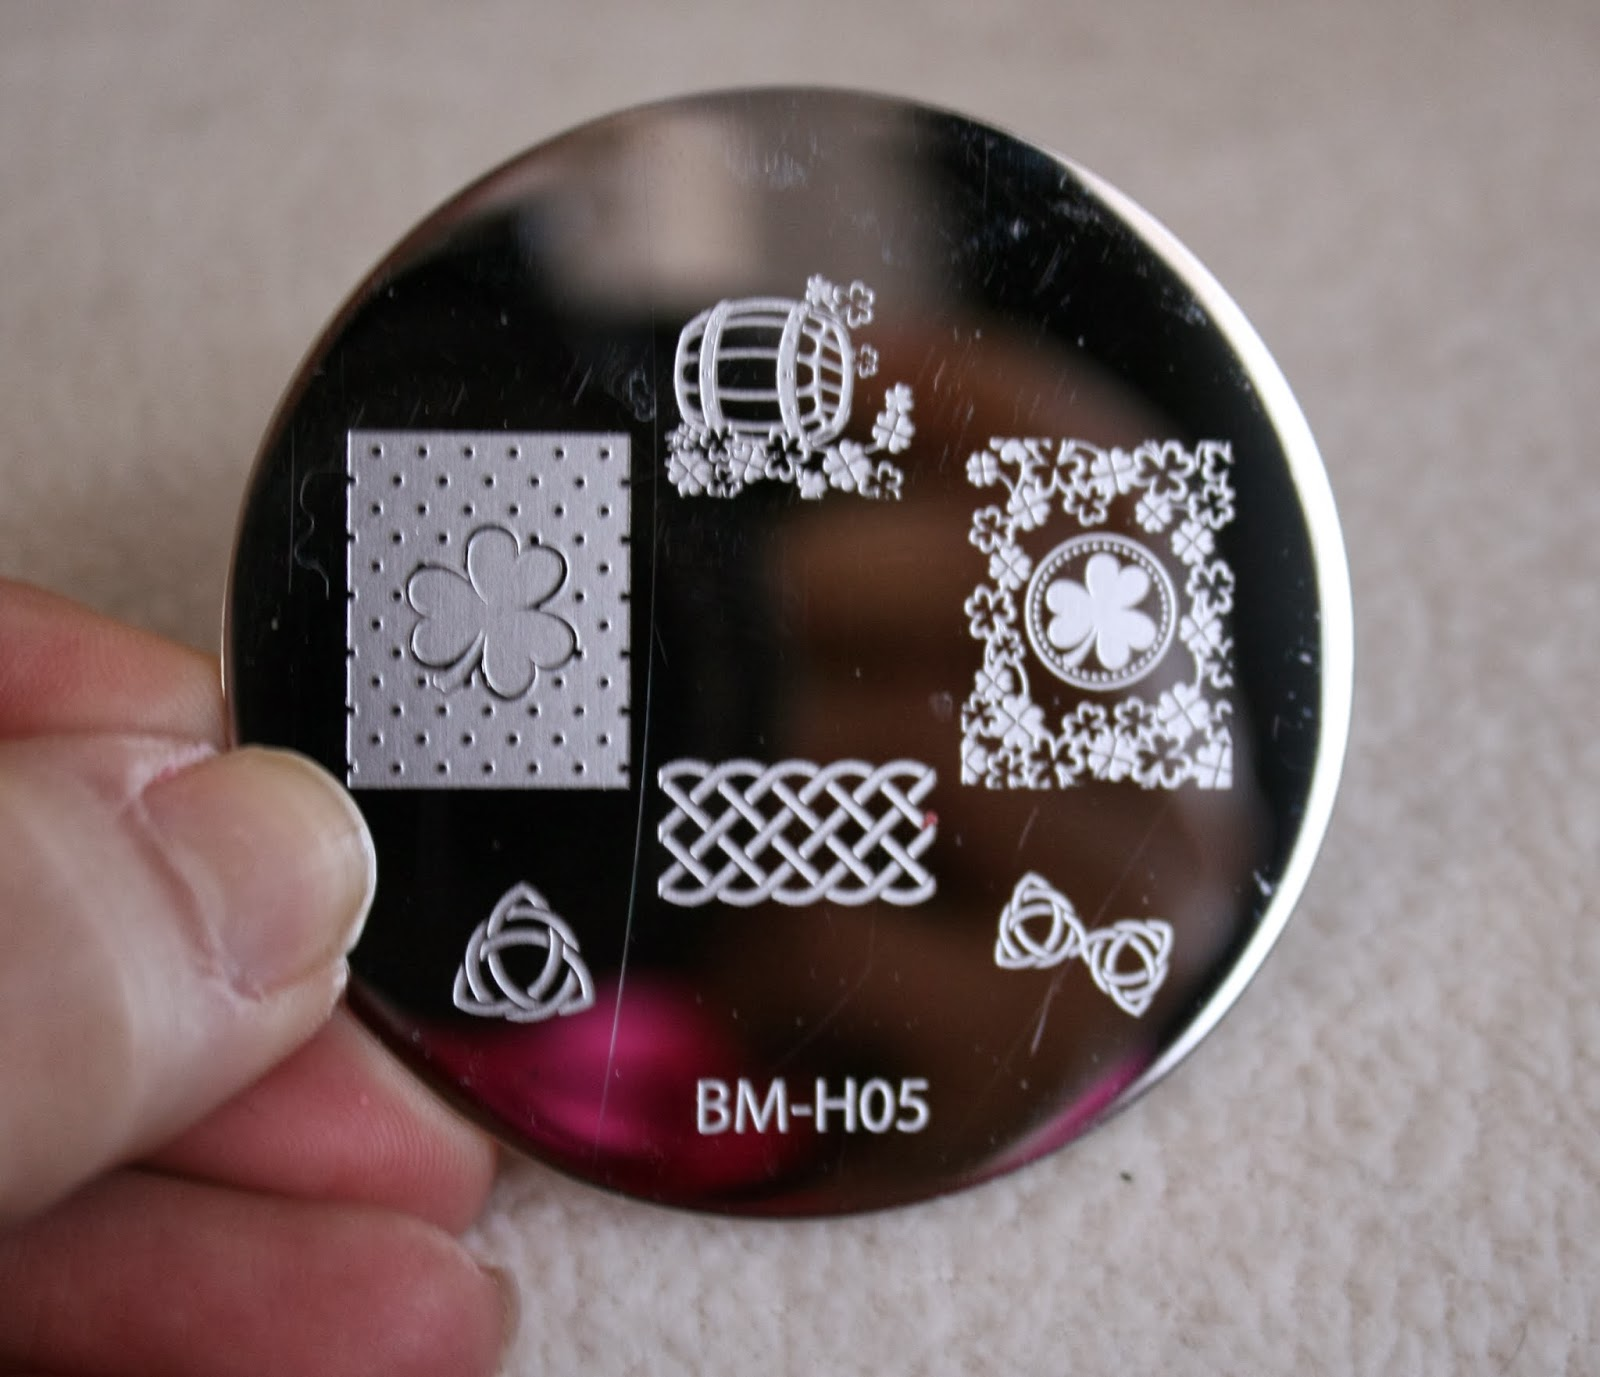 bundle monster nail stamping plates set collection holiday 2013 nails art stamp konad bm-h05